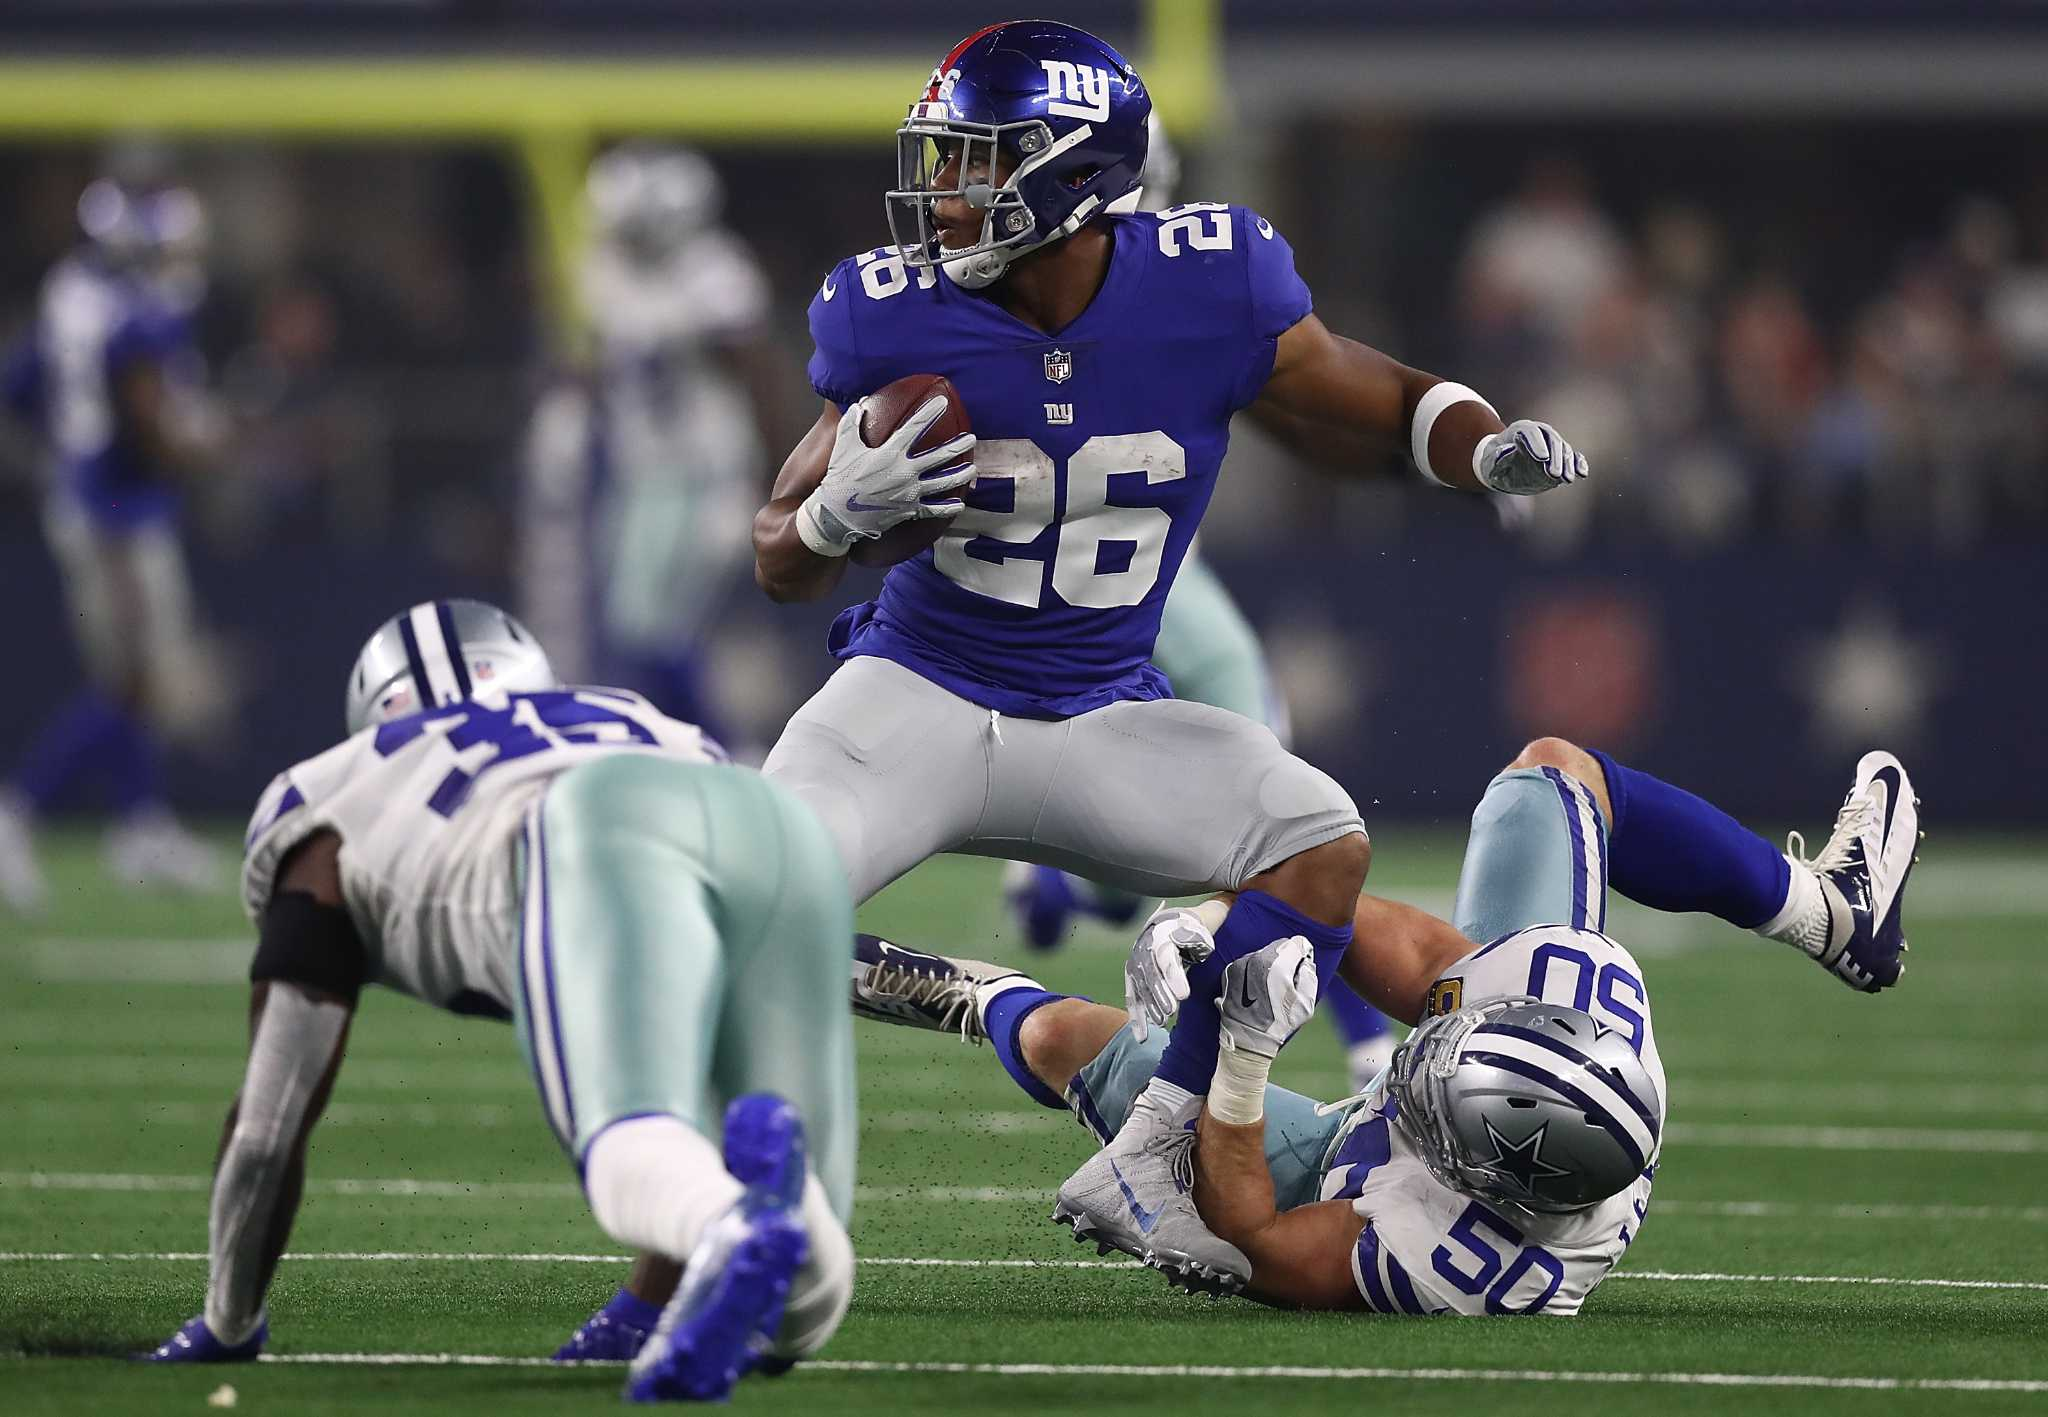 Texans bracing for Giants rookie RB Saquon Barkley - Houston Chronicle 73569915a